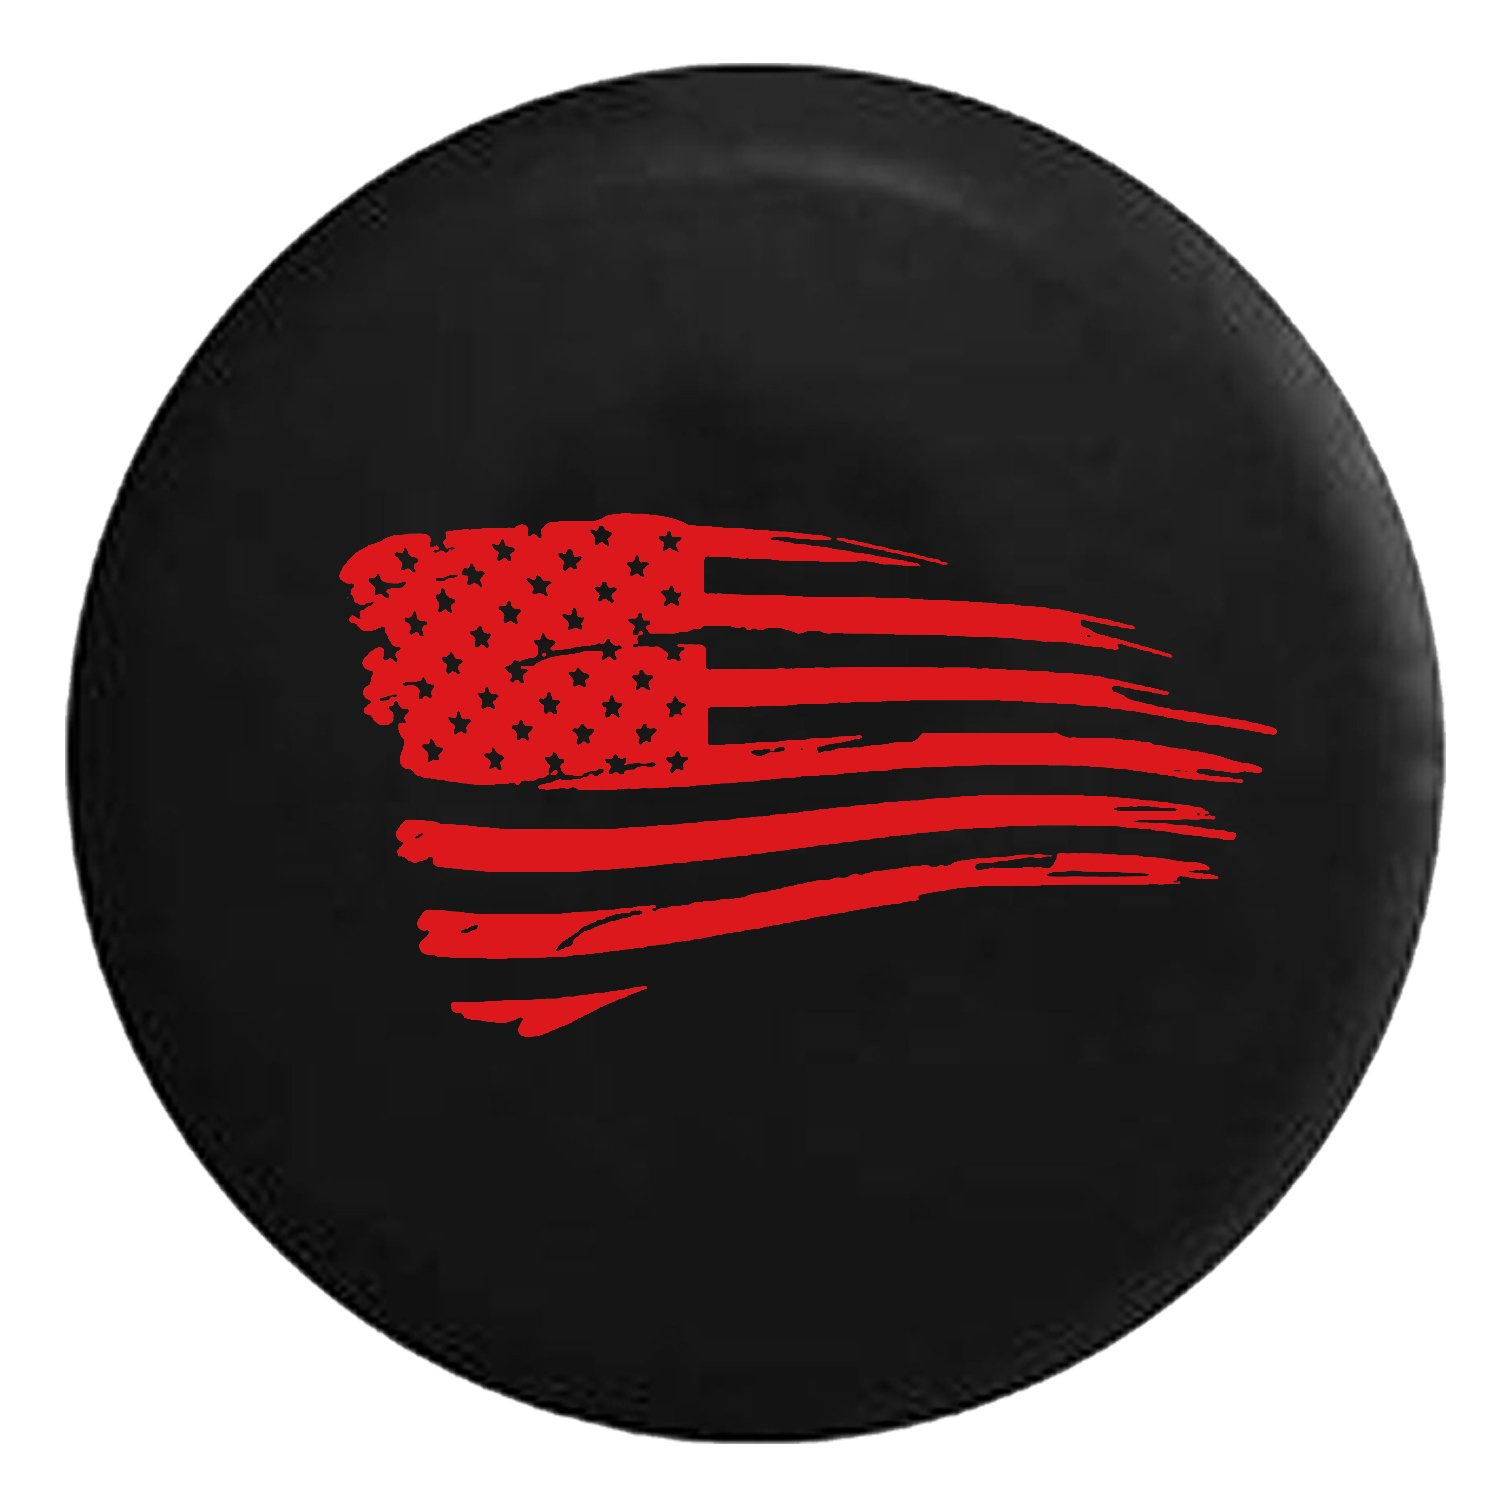 Waving American Tattered Flag Military Spare Jeep Wrangler Camper SUV Tire Cover Red Ink 33 in